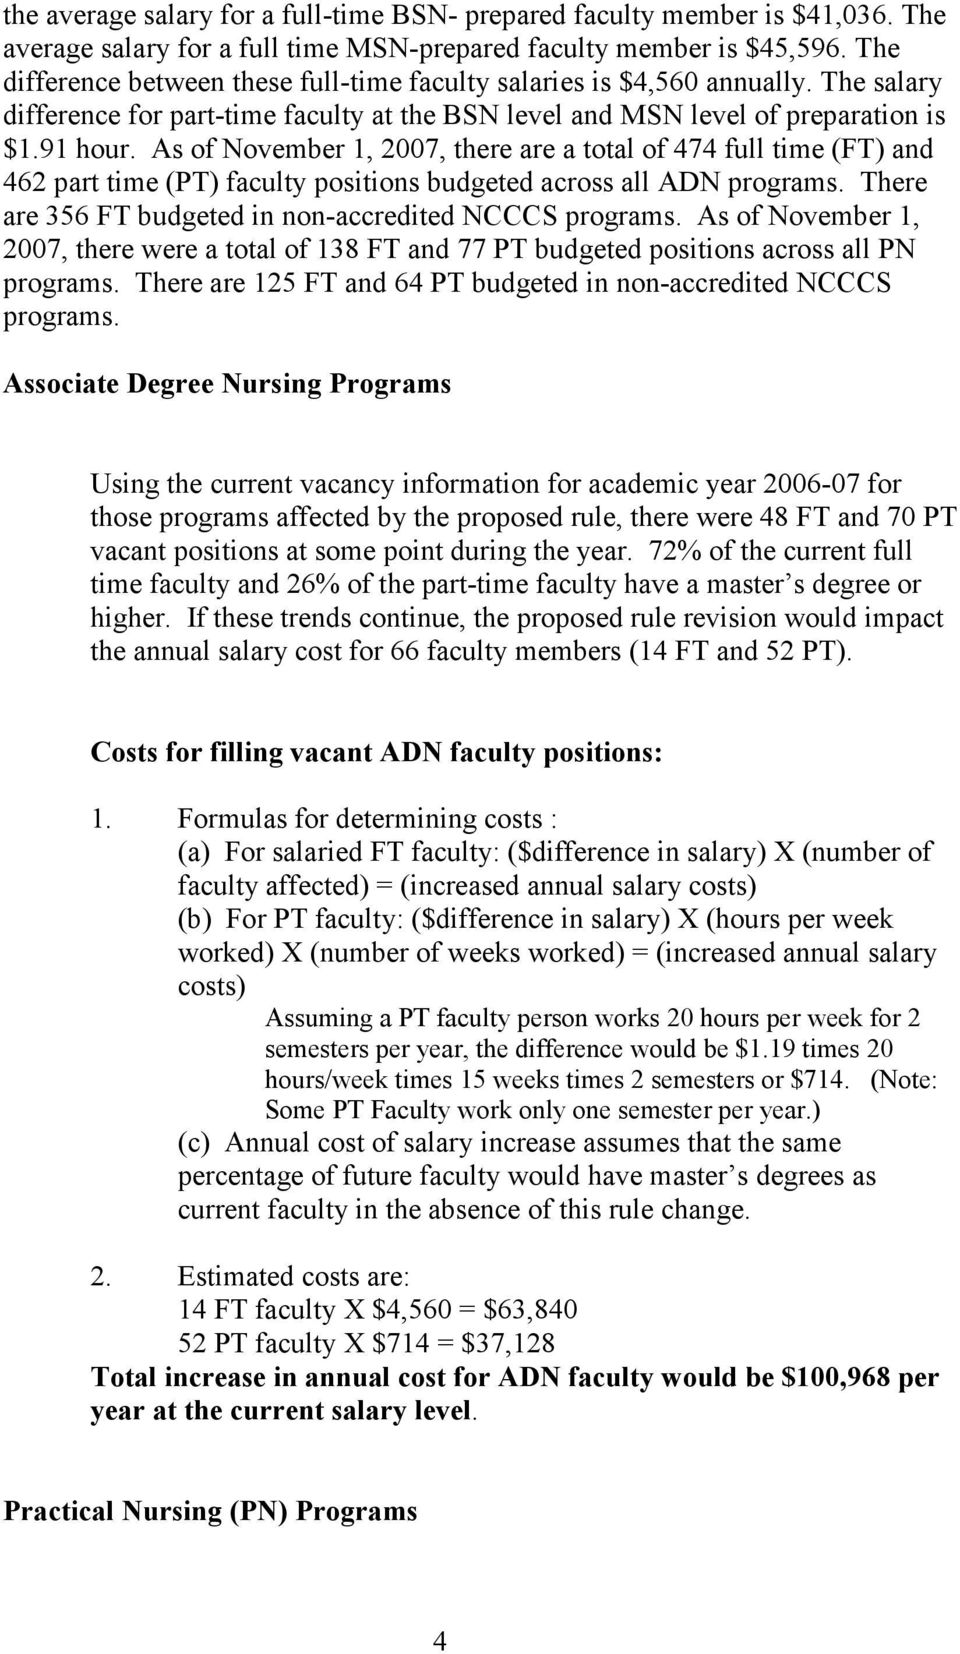 As of November 1, 2007, there are a total of 474 full time (FT) and 462 part time (PT) faculty positions budgeted across all ADN programs. There are 356 FT budgeted in non-accredited NCCCS programs.